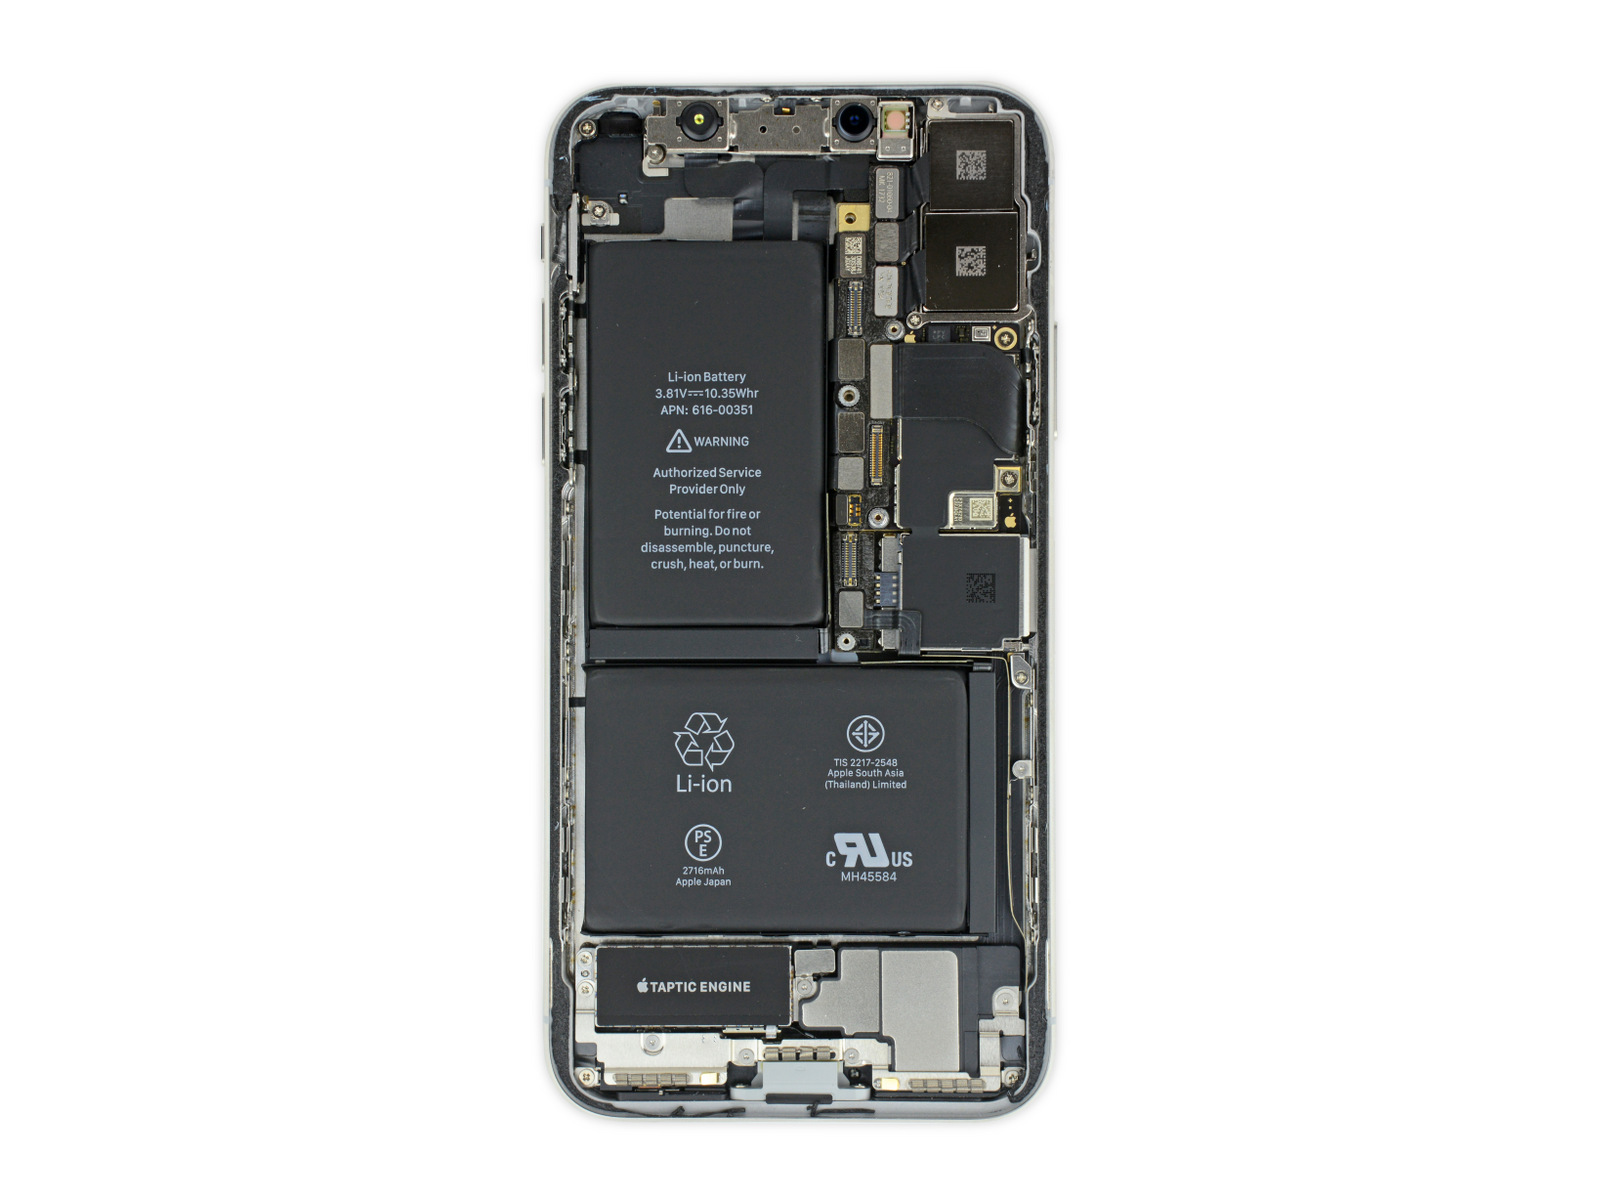 Iphone 8 Plus Internals Wallpaper Iphone X Ifixit Teardown Exposes Face Id Reveals Two